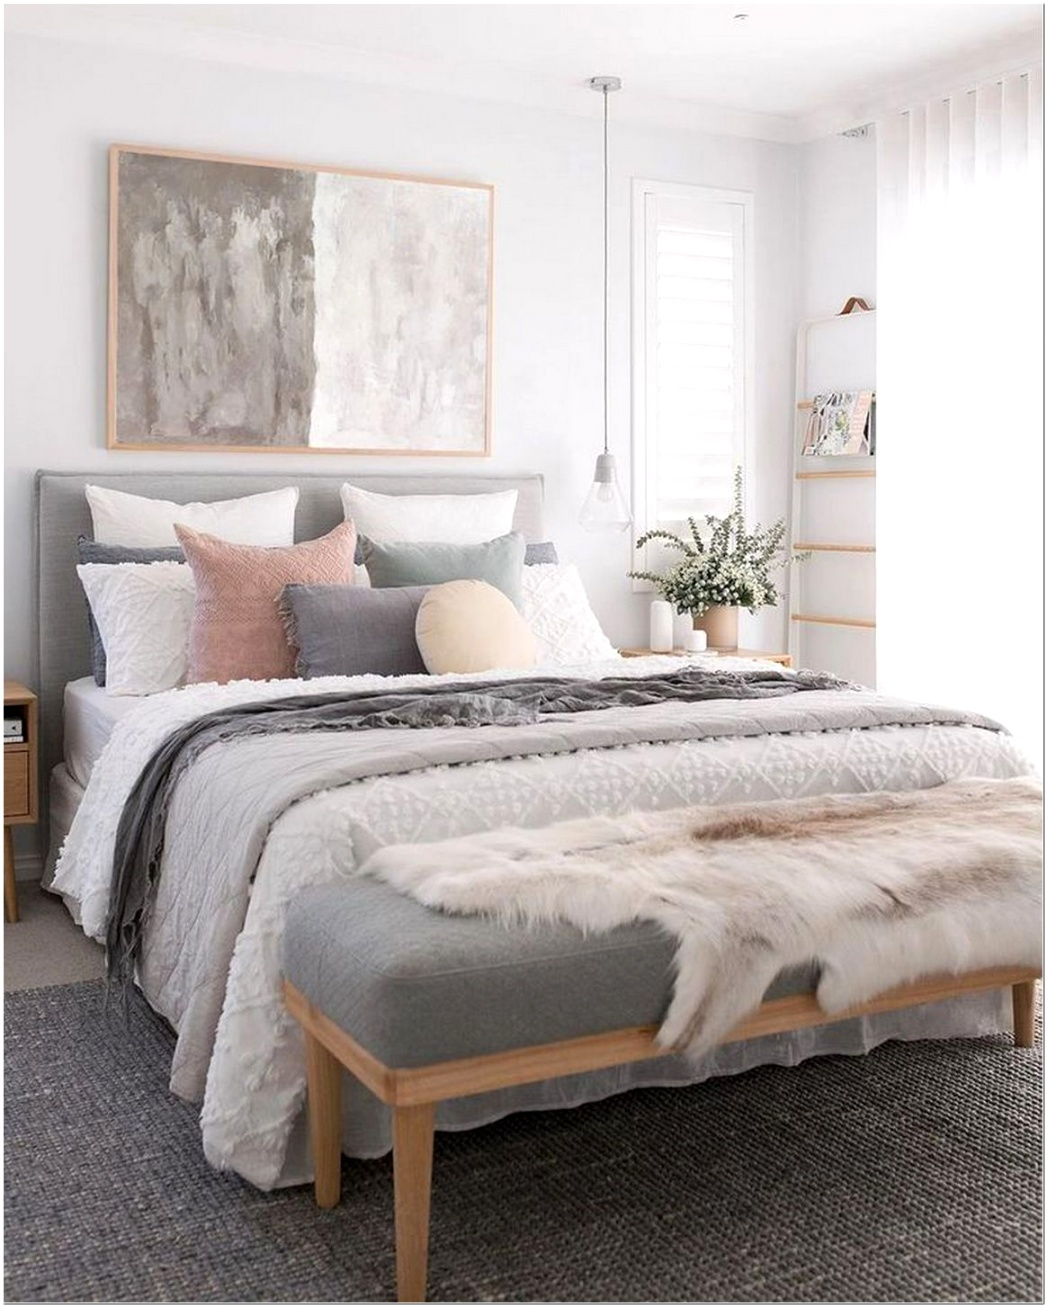 67 Great Ideas For Cozy Bedroom Decor 21